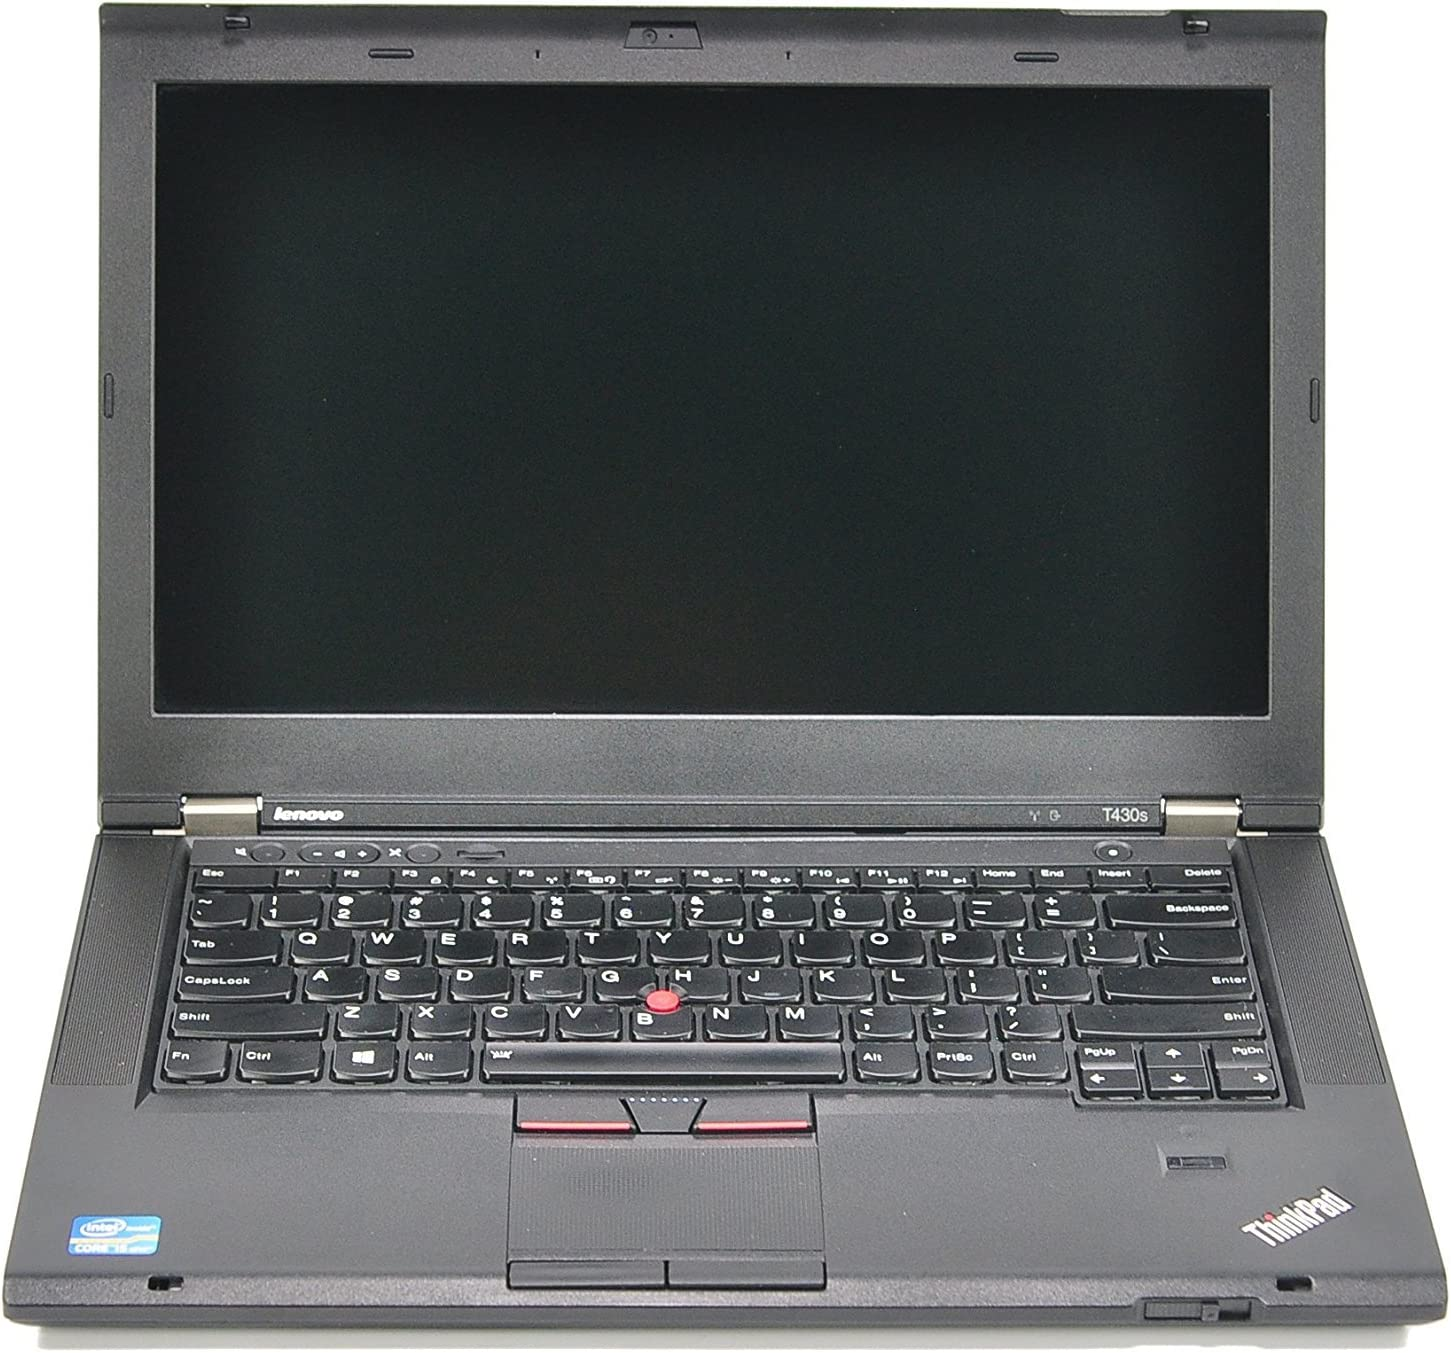 Lenovo Thinkpad T430s 14in HD Business Performance Laptop Computer PC, Intel Dual Core i5-3320M up to 3.3GHz, 16GB Ram, 256GB SSD, DVD, Bluetooth, Windows 10 Professional (Renewed)